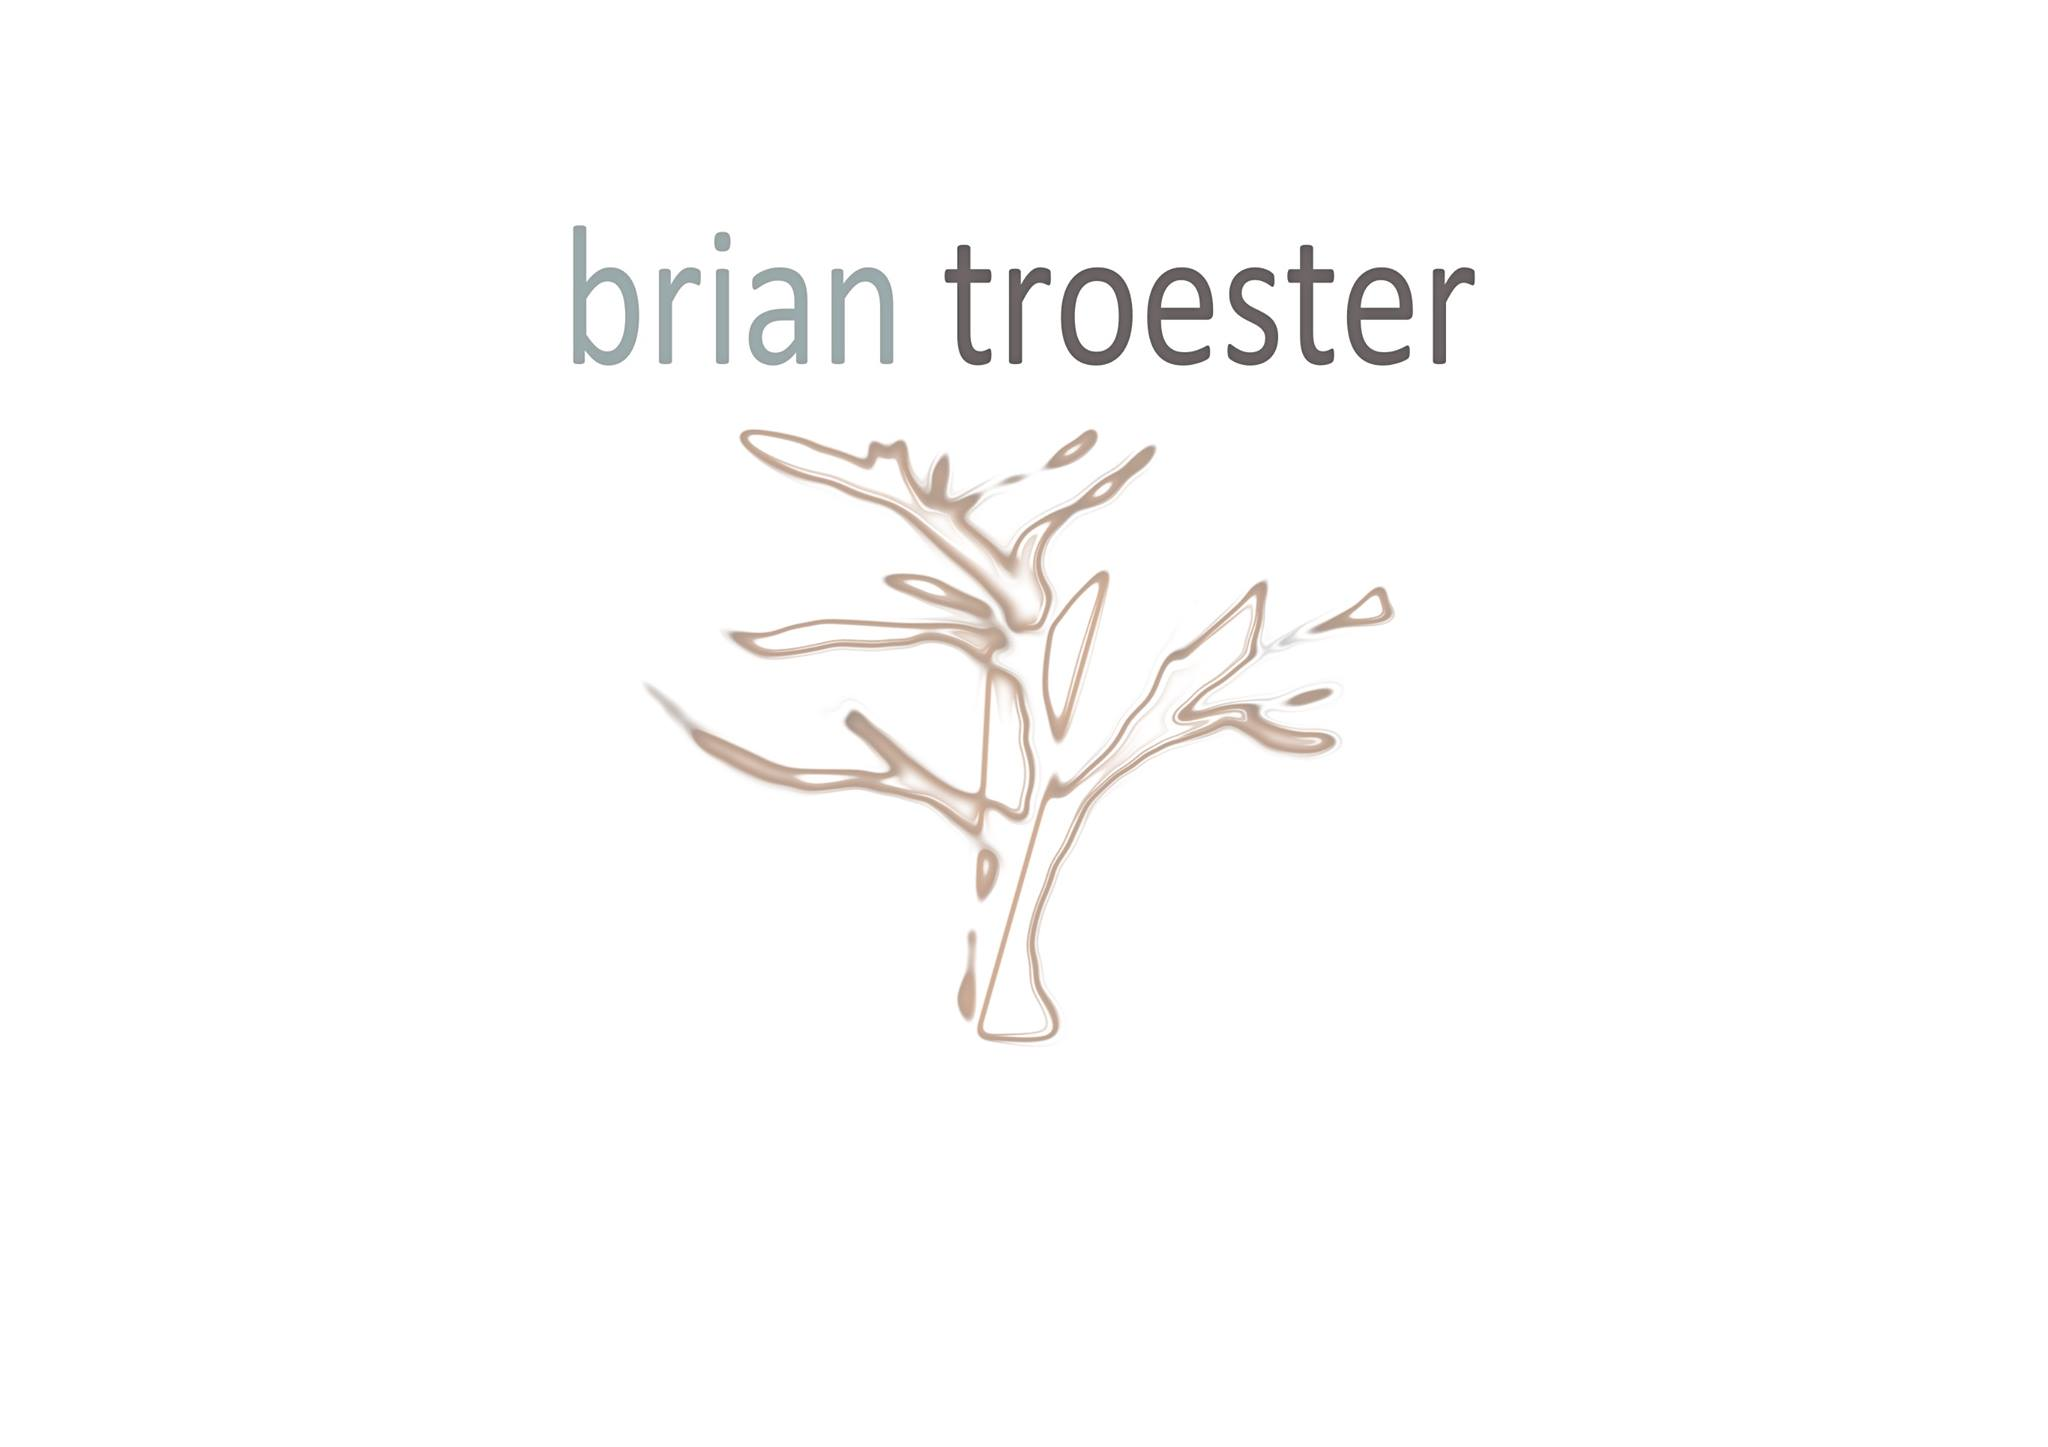 BRIAN TROESTER